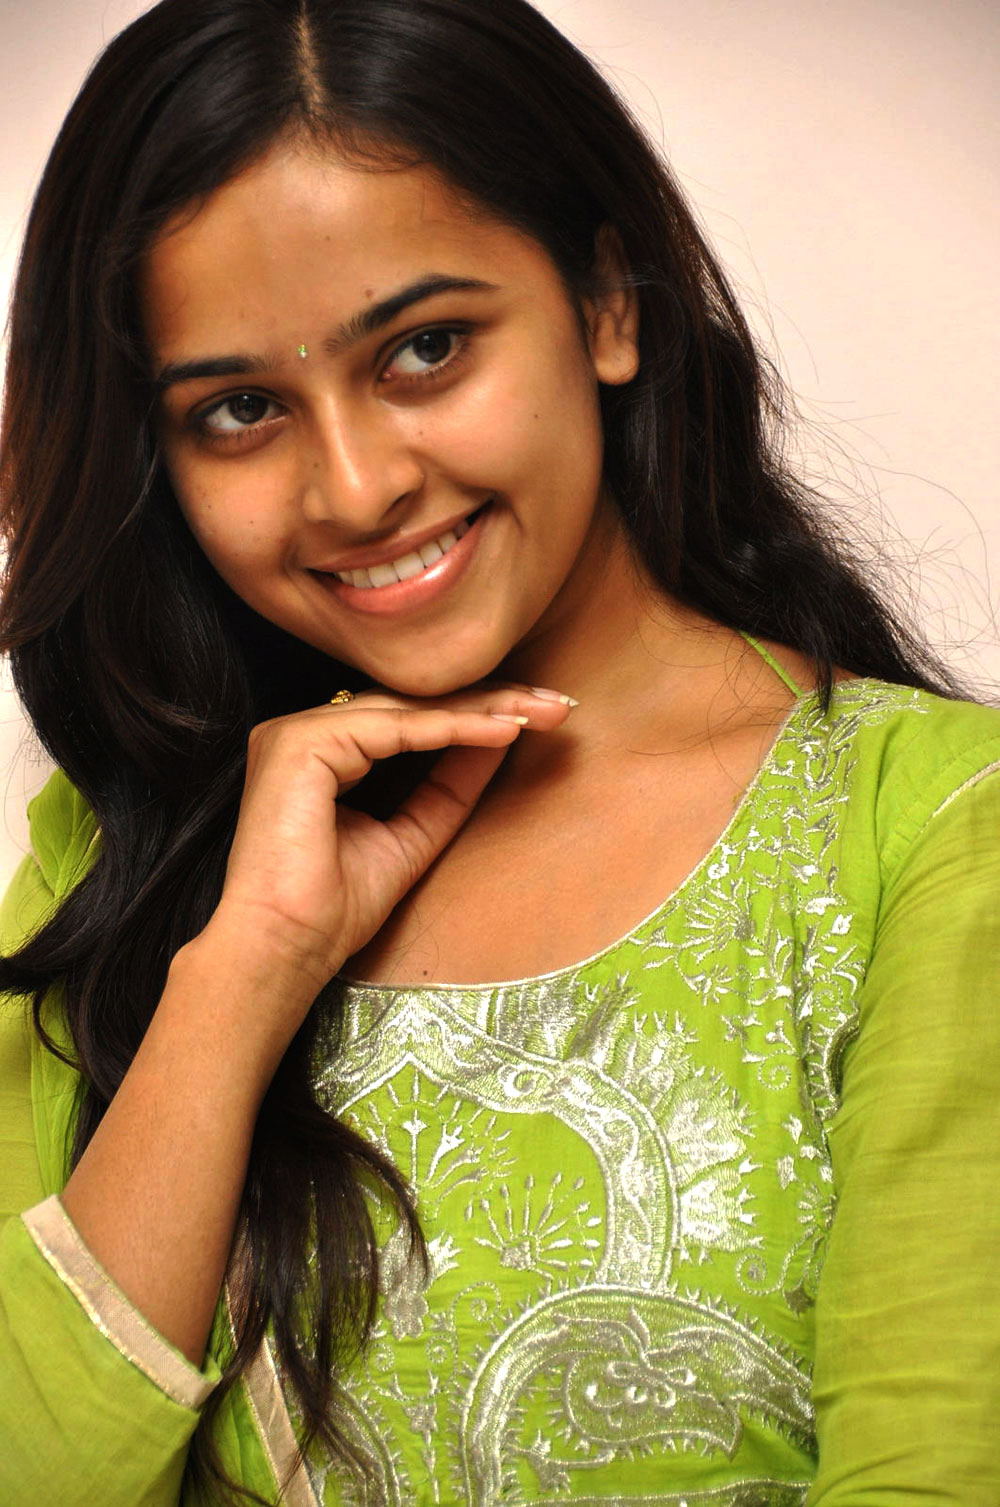 Sri divya latest photos at mallela teeramlo sirimalle puvvuu pm